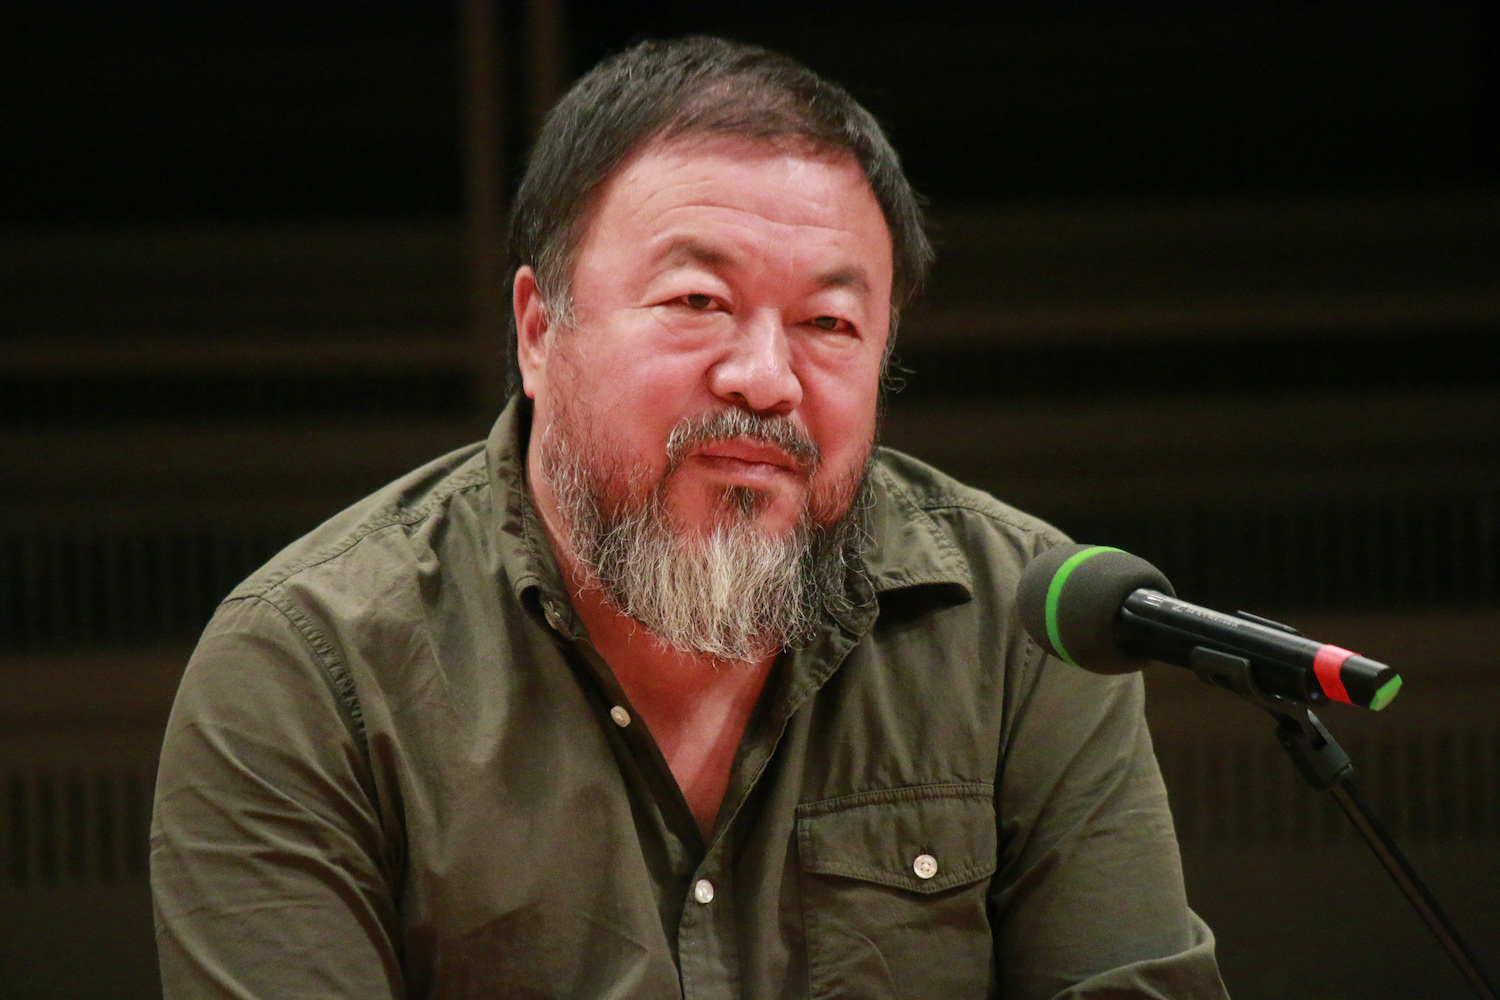 Richard Prince Interviews Lisa Spellman, Ai Weiwei Sends Researchers to Hong Kong, and More: Morning Links from August 9, 2019 -